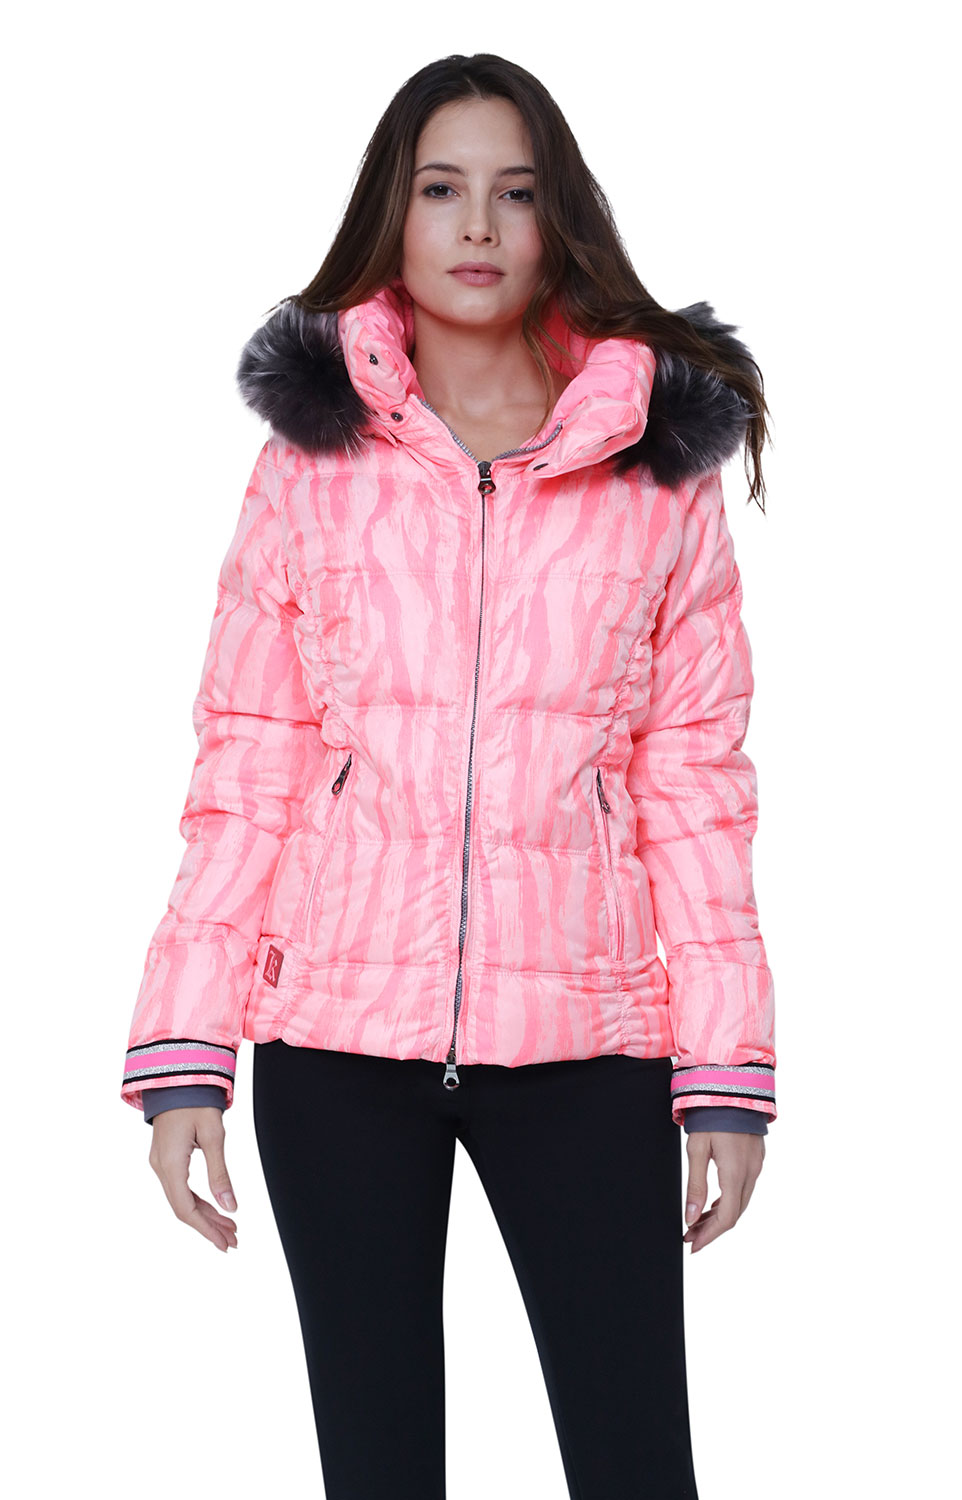 Stripey Coral ski jacket for women from Kelly by Sissy at Winternational